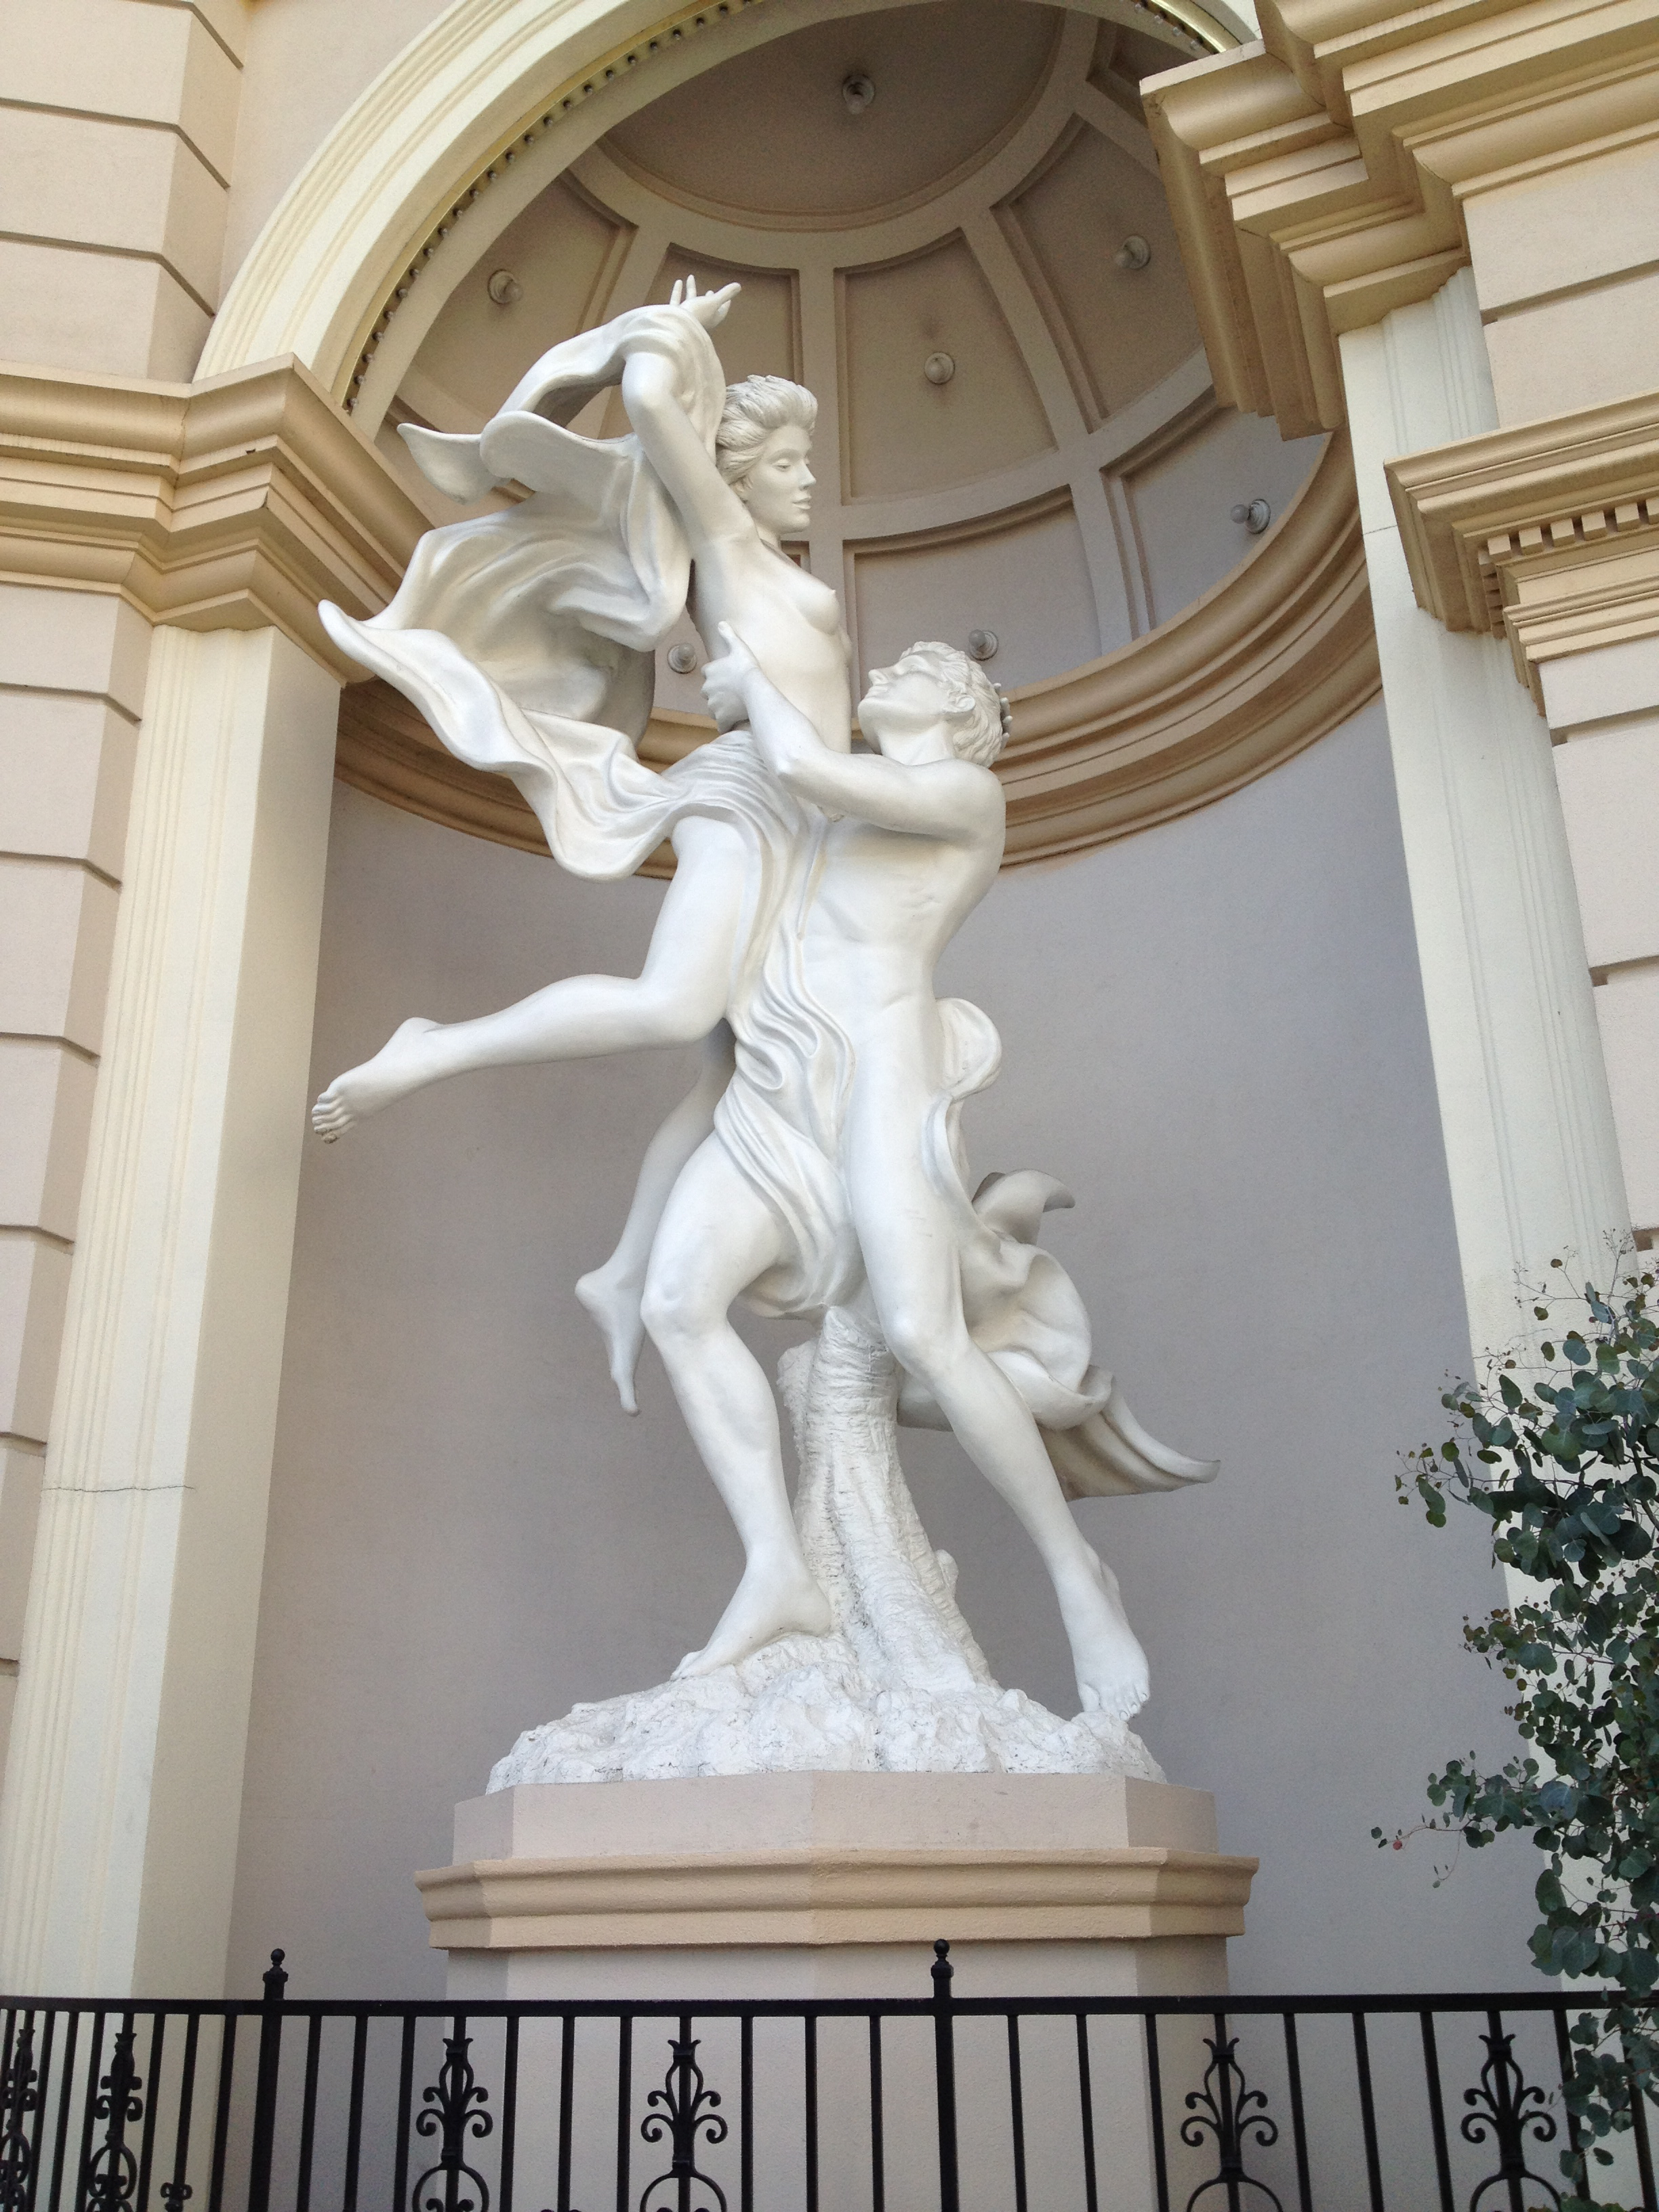 Statue in front of Monte Carlo